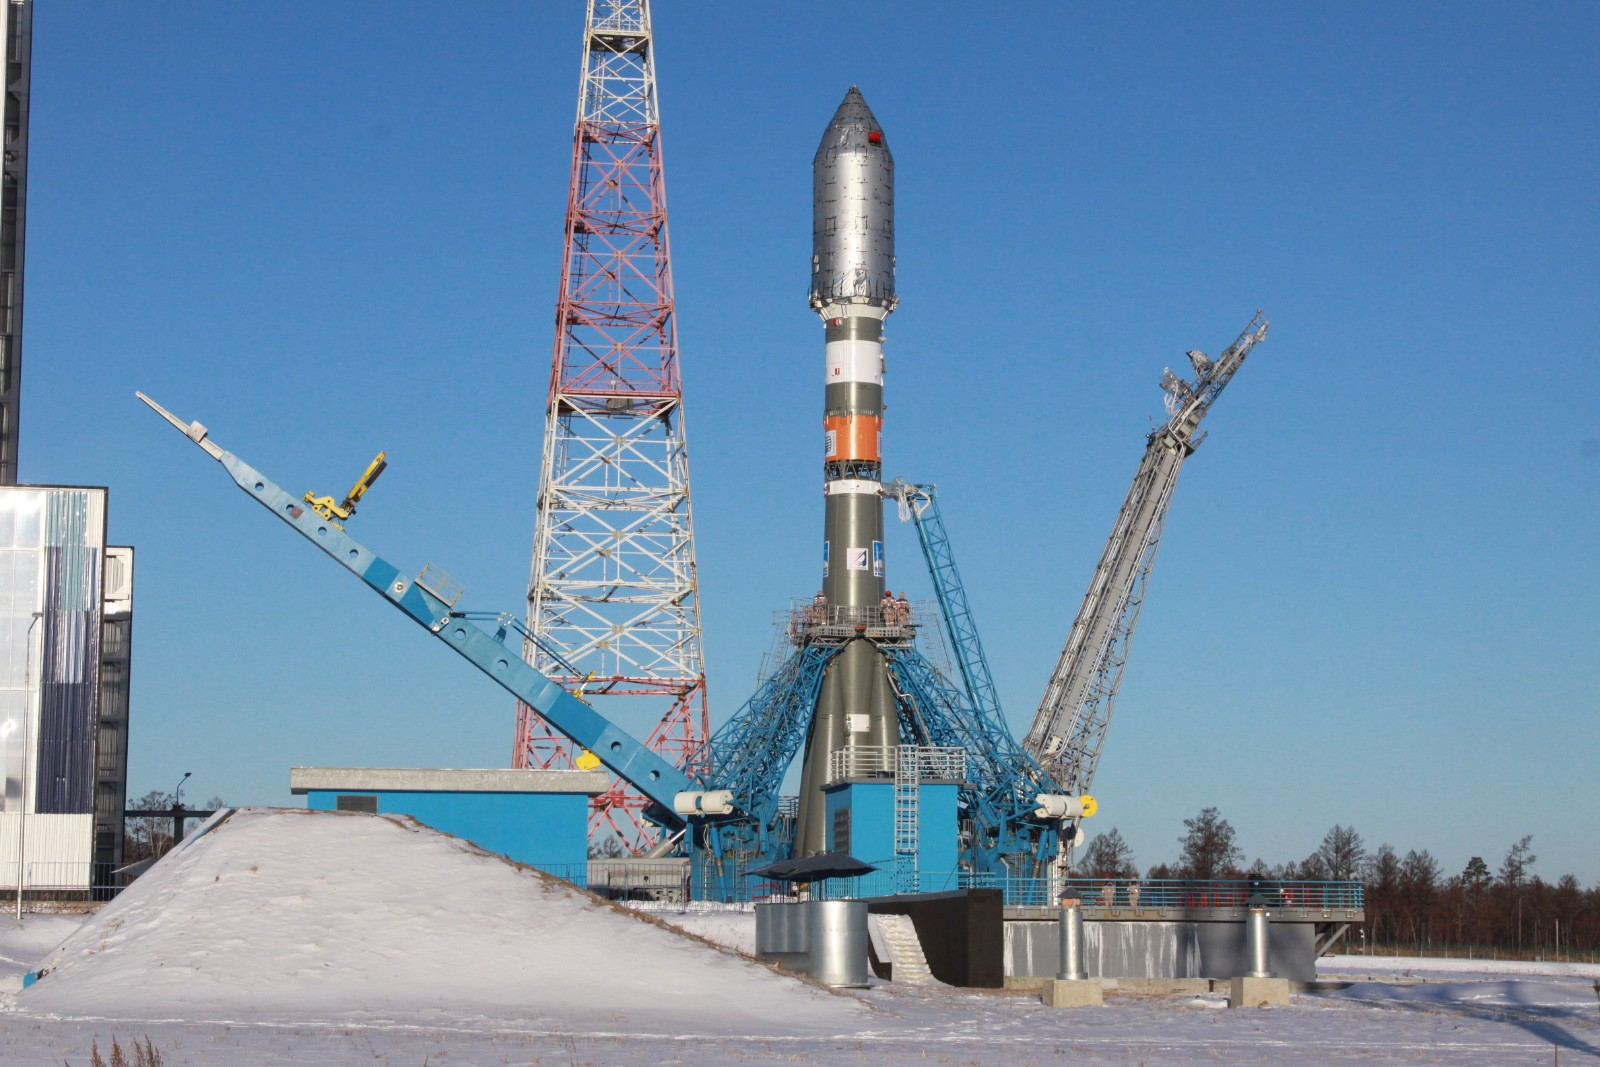 Builders of the Vostochny cosmodrome staged a strike due to non-payment of salaries 03/30/2015 57